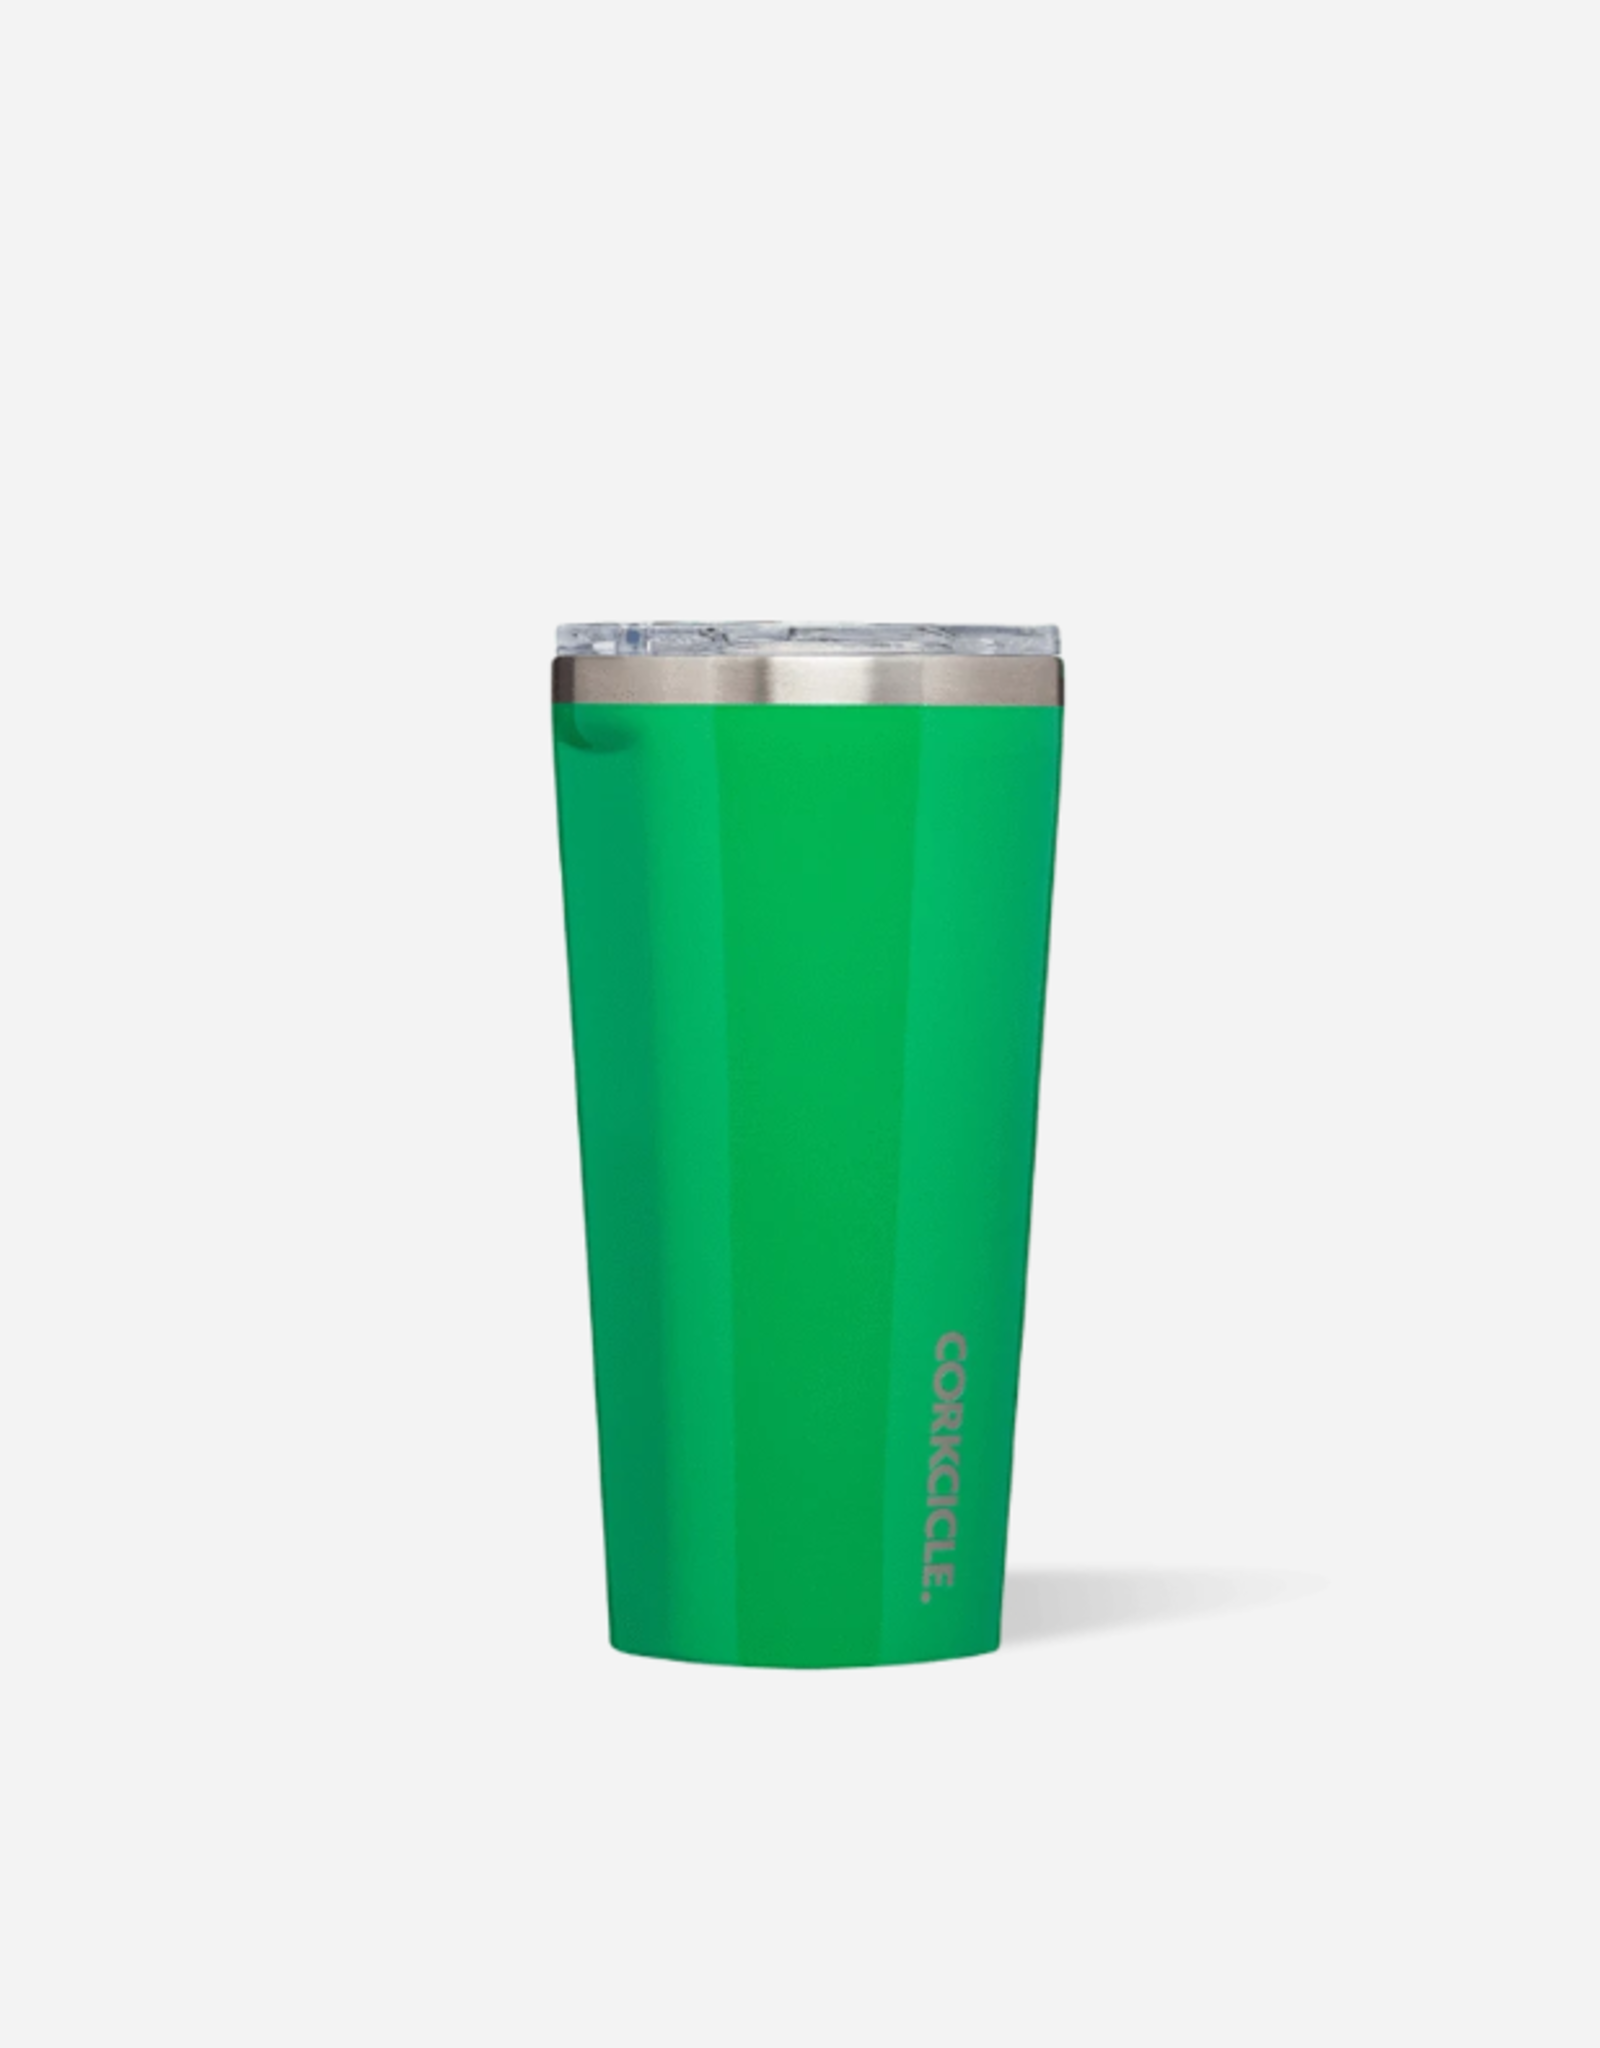 Corkcicle Corkcicle Tumbler 16oz, Putting Green